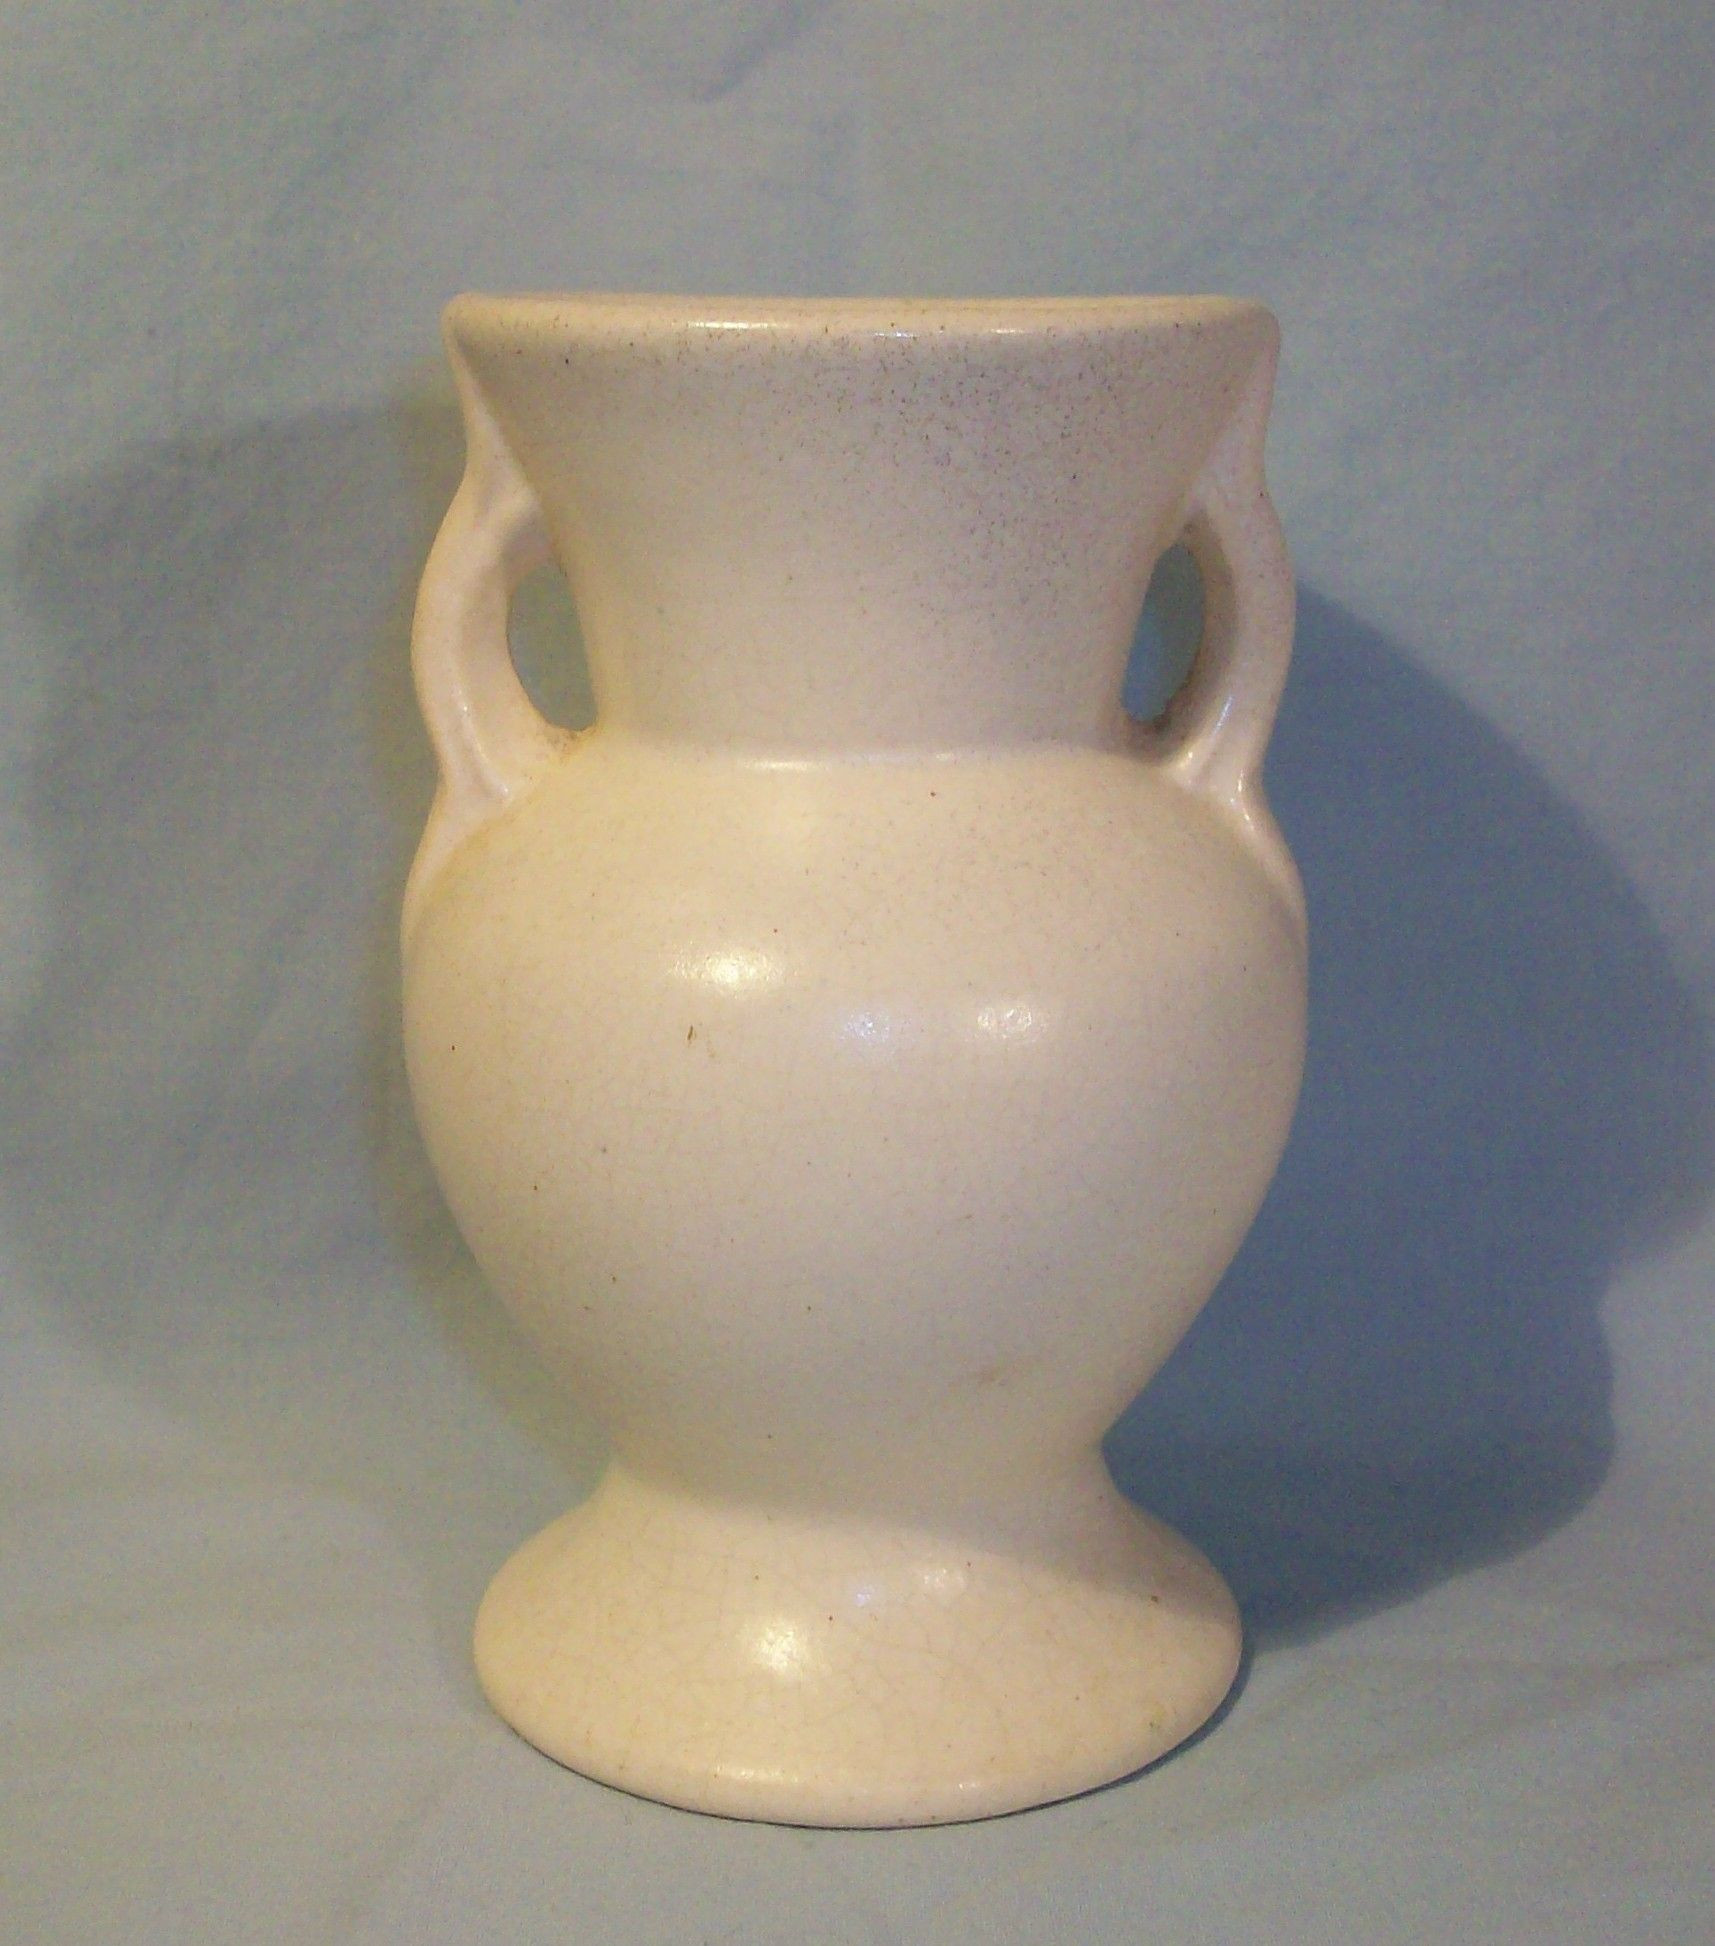 Royal Haeger Usa Vase Of 1940s Shawnee Pottery Miniature Vintage Pottery From Jens with 1940s Shawnee Pottery Miniature